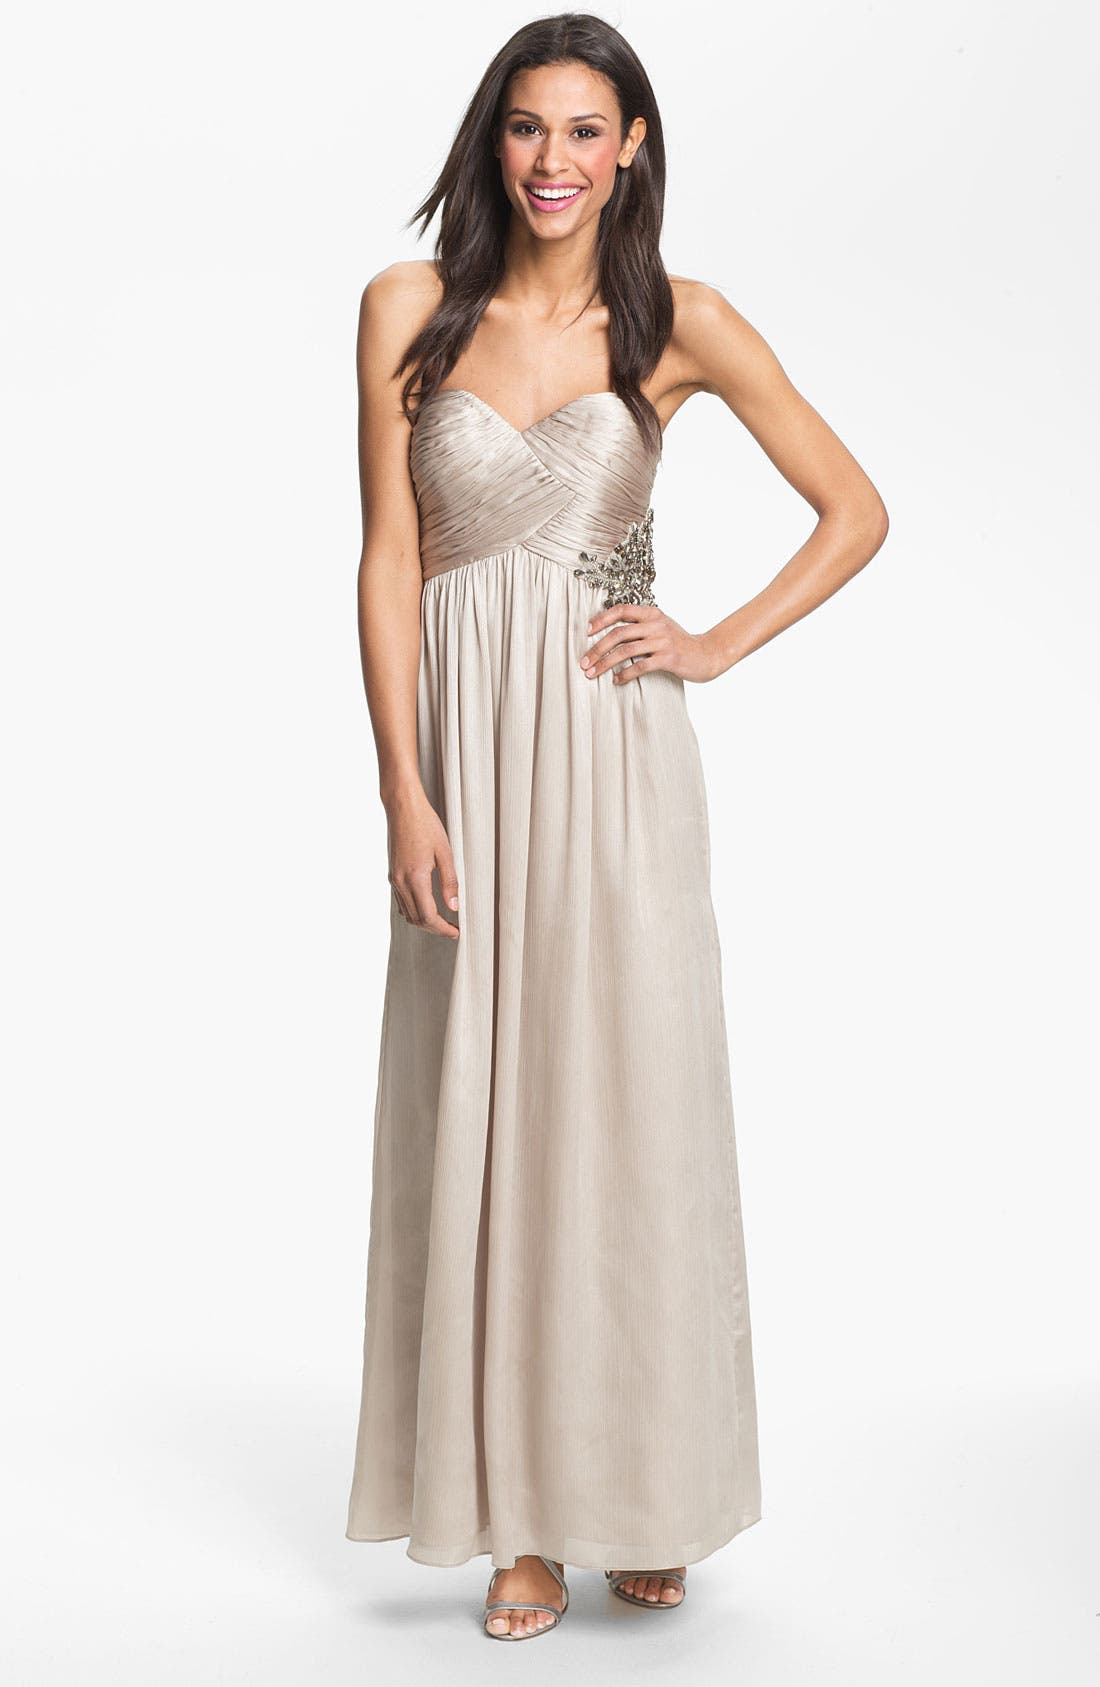 Main Image - Calvin Klein V-Neck Textured Metallic Jersey Gown